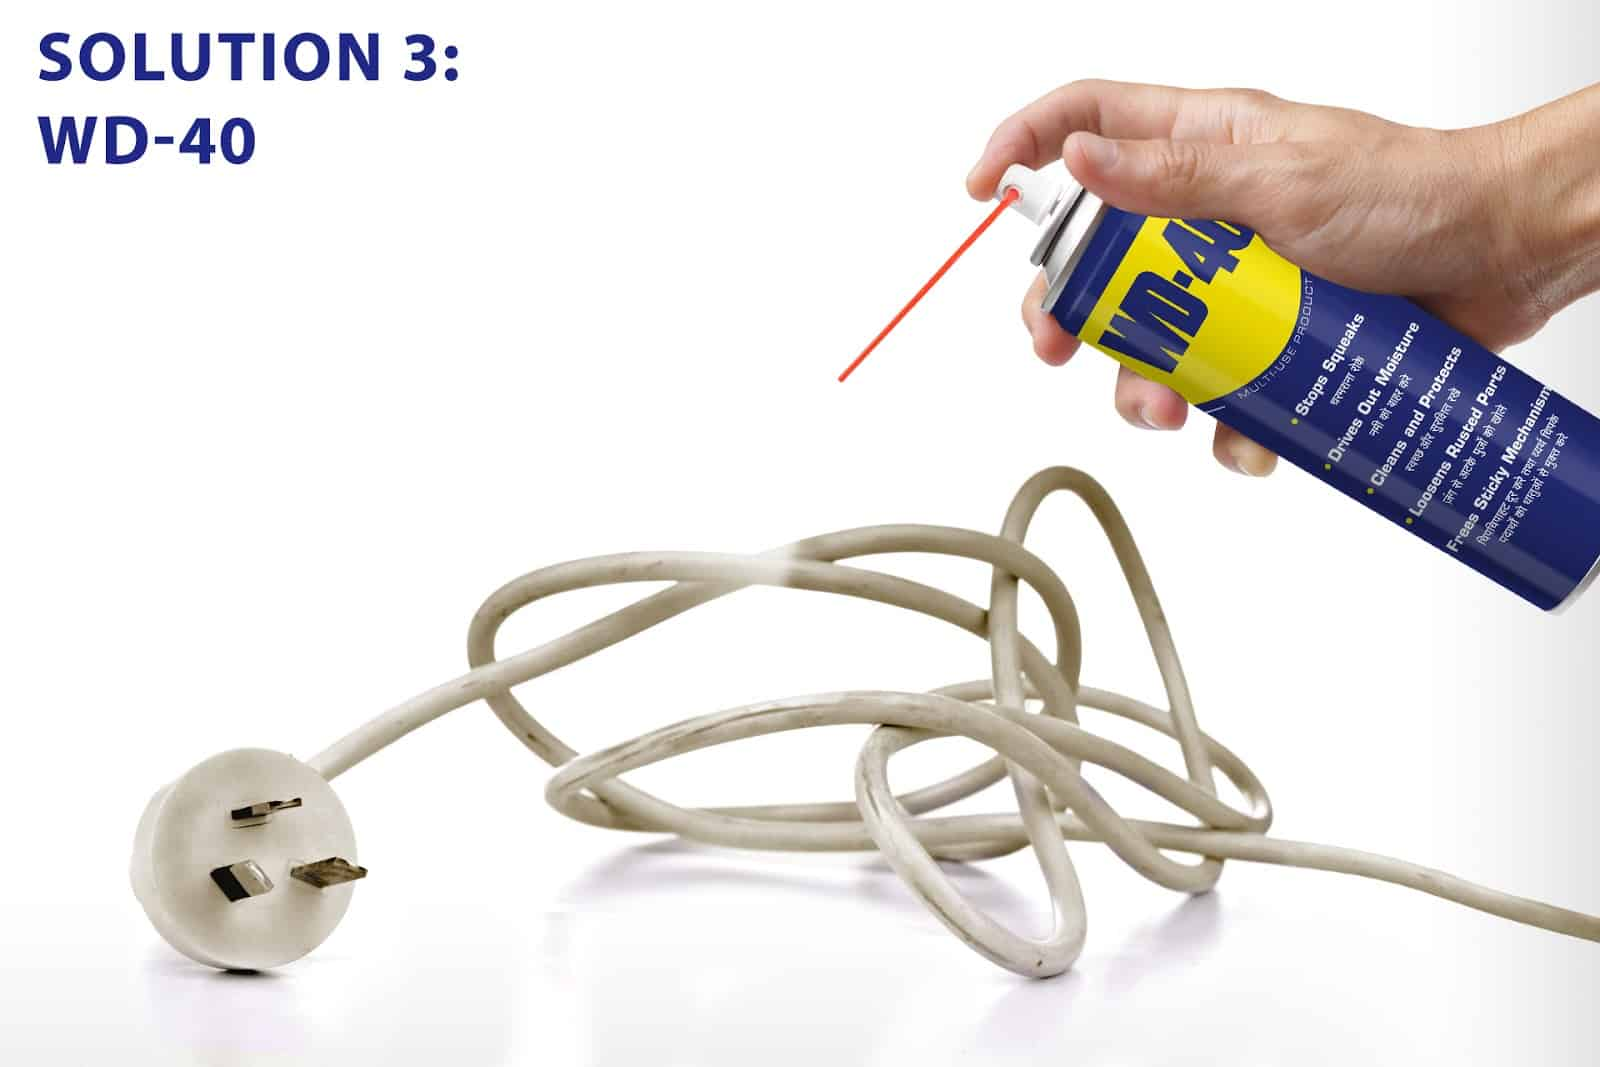 Dirty power cords? Here's how you can clean them.